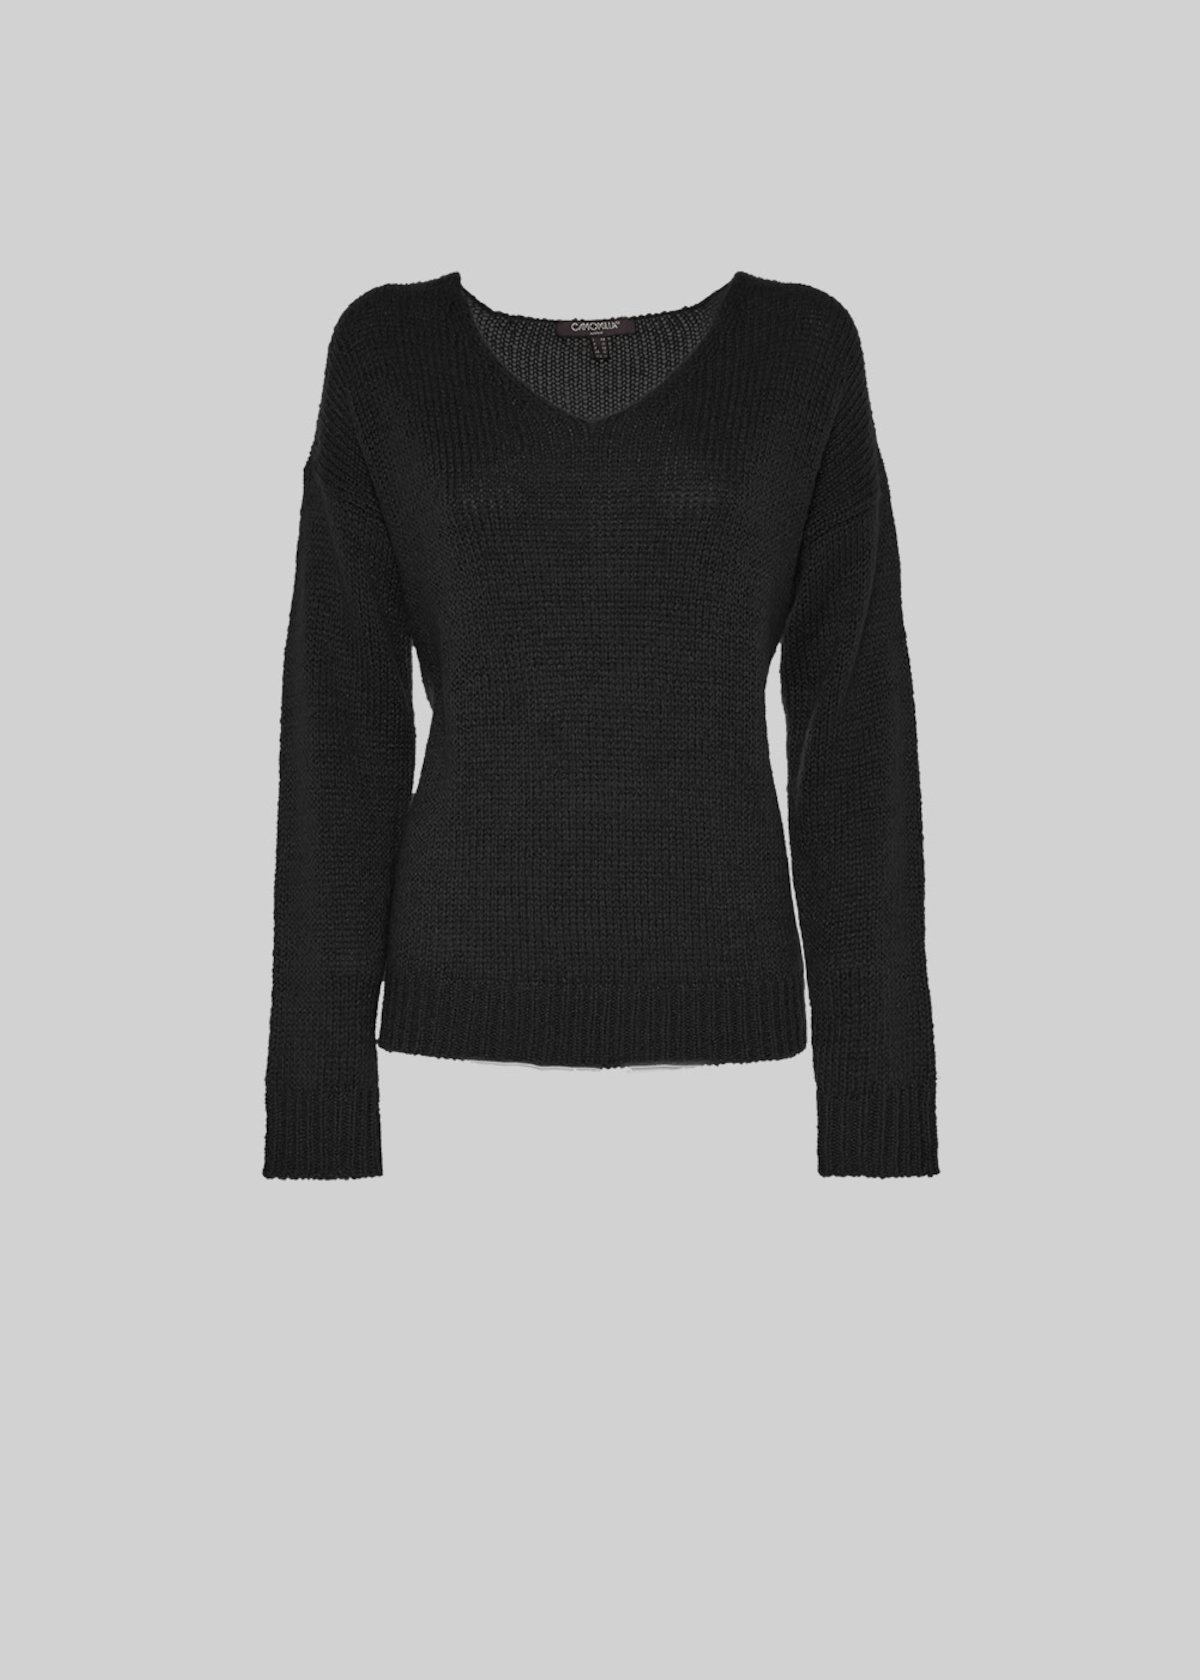 Marrie lurex effect sweater with V-neck